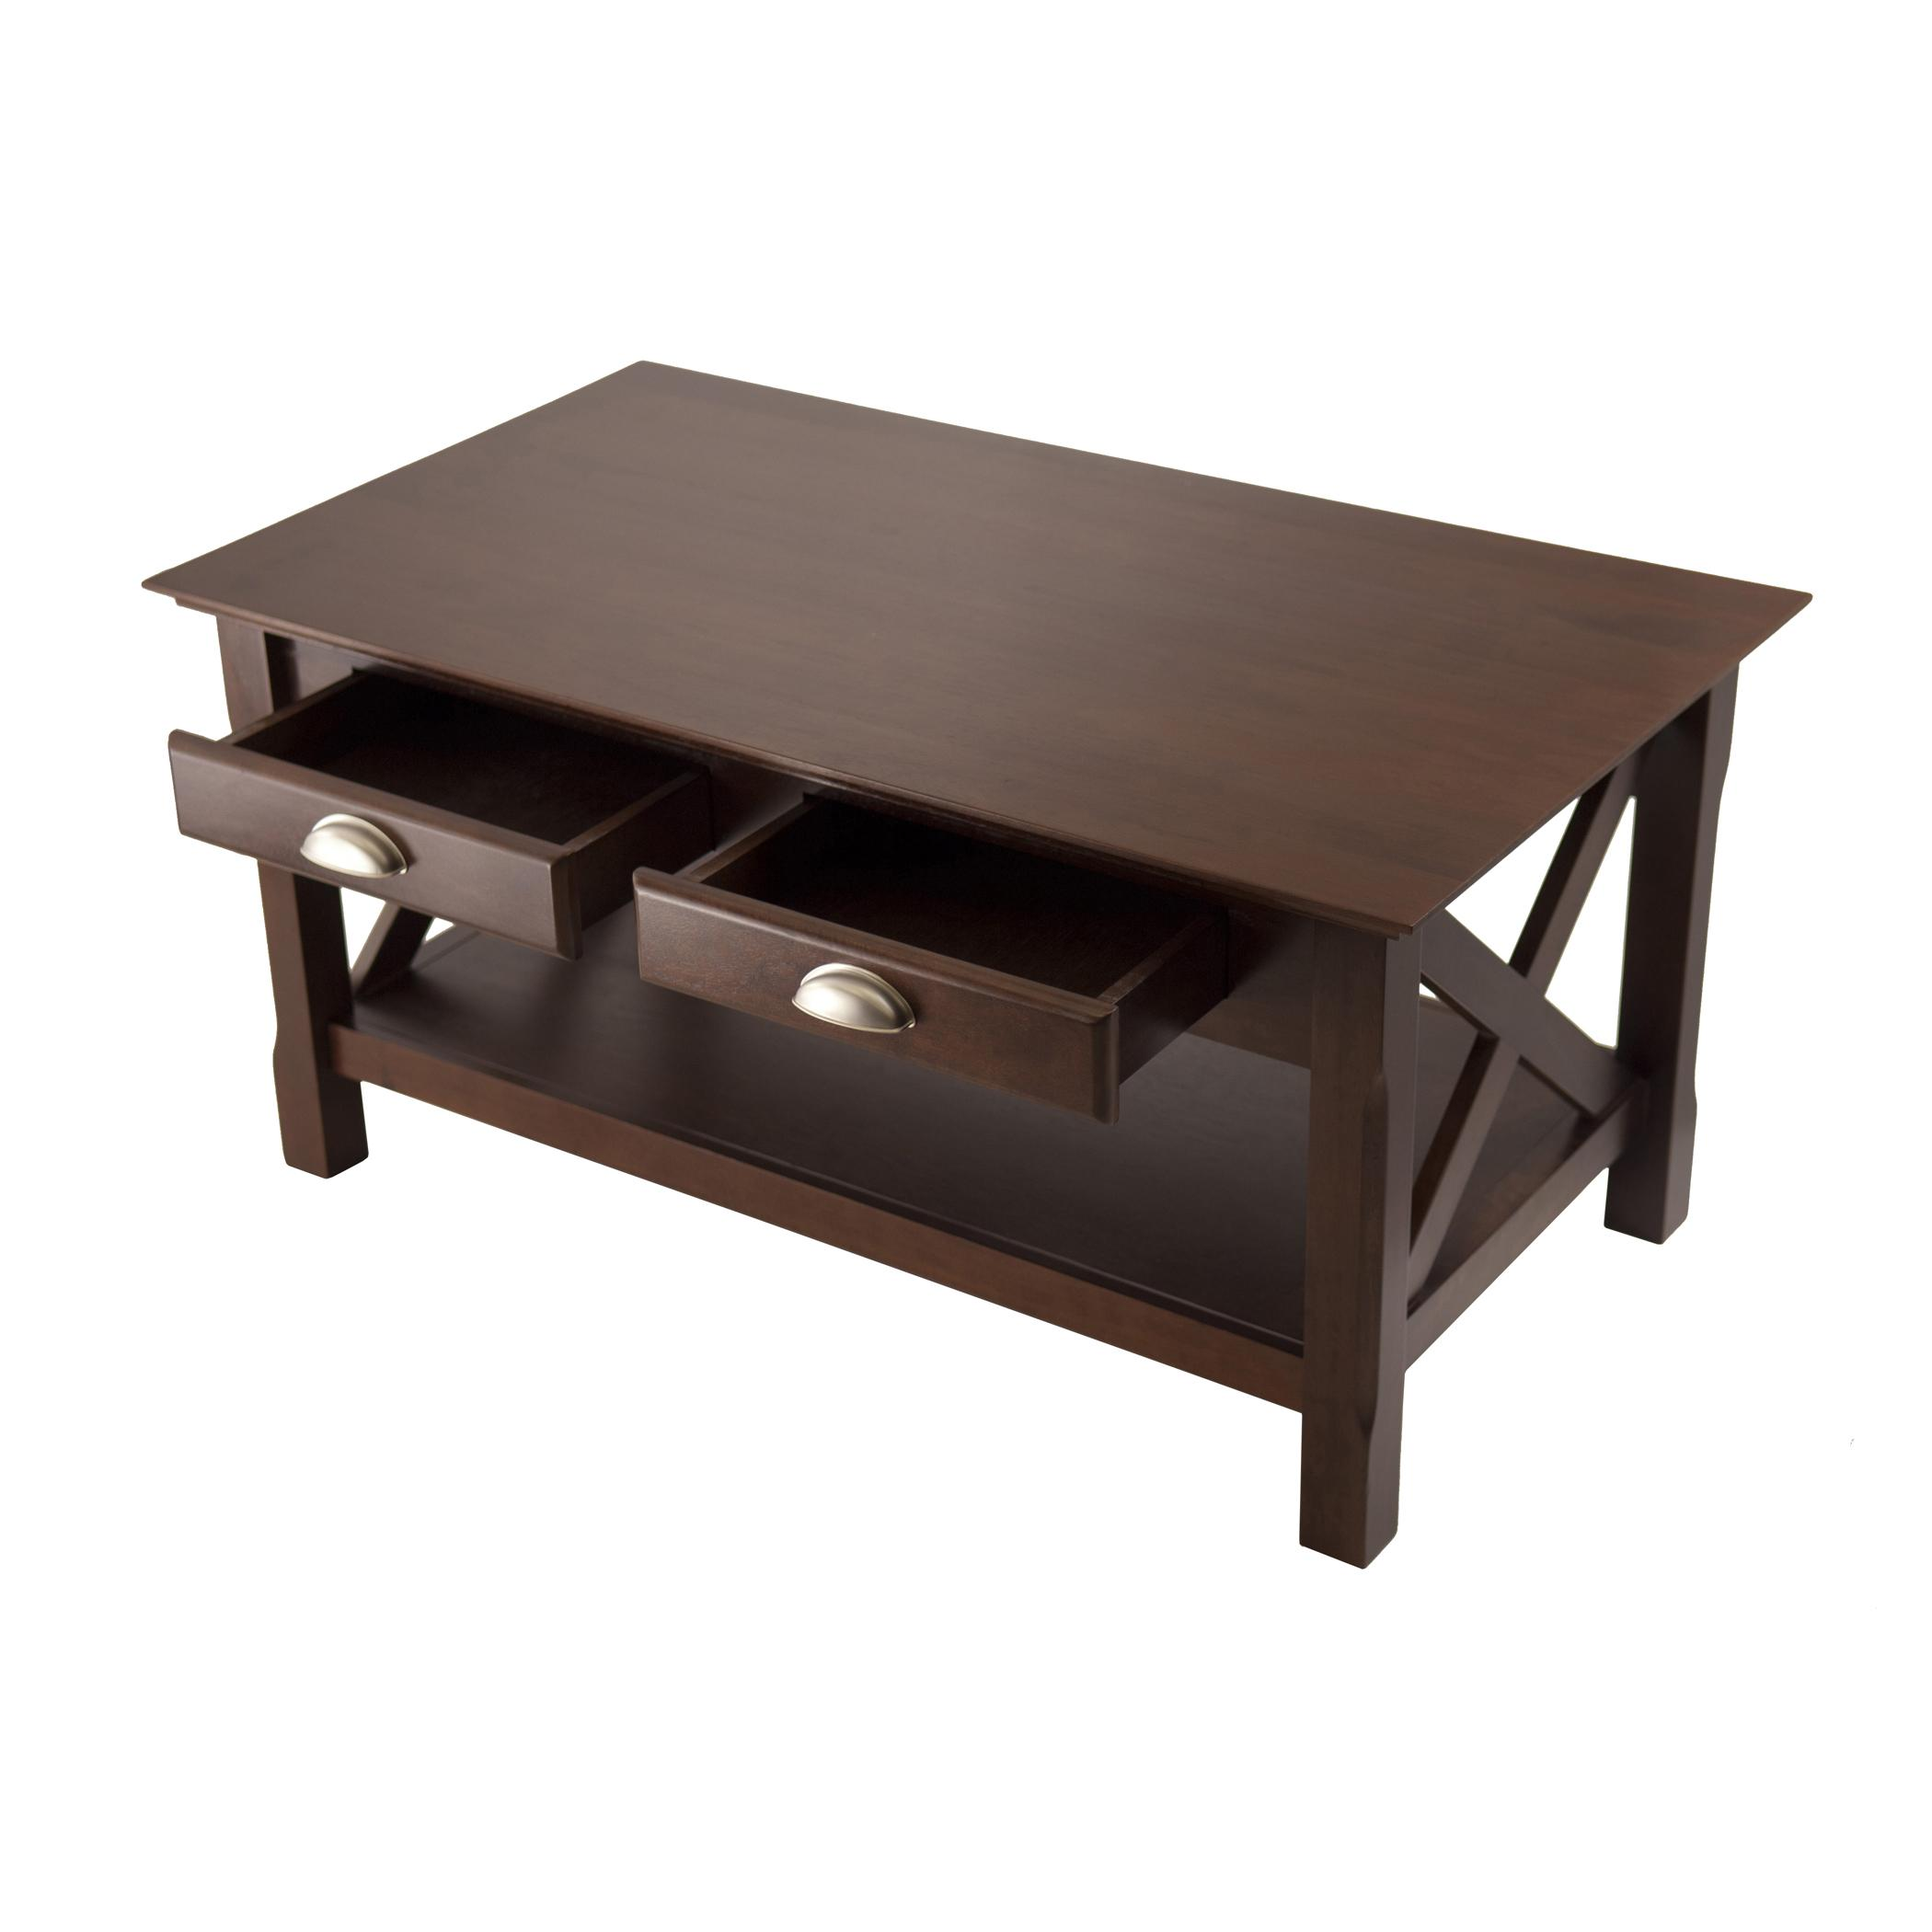 winsome wood 40538 xola occasional table. Black Bedroom Furniture Sets. Home Design Ideas